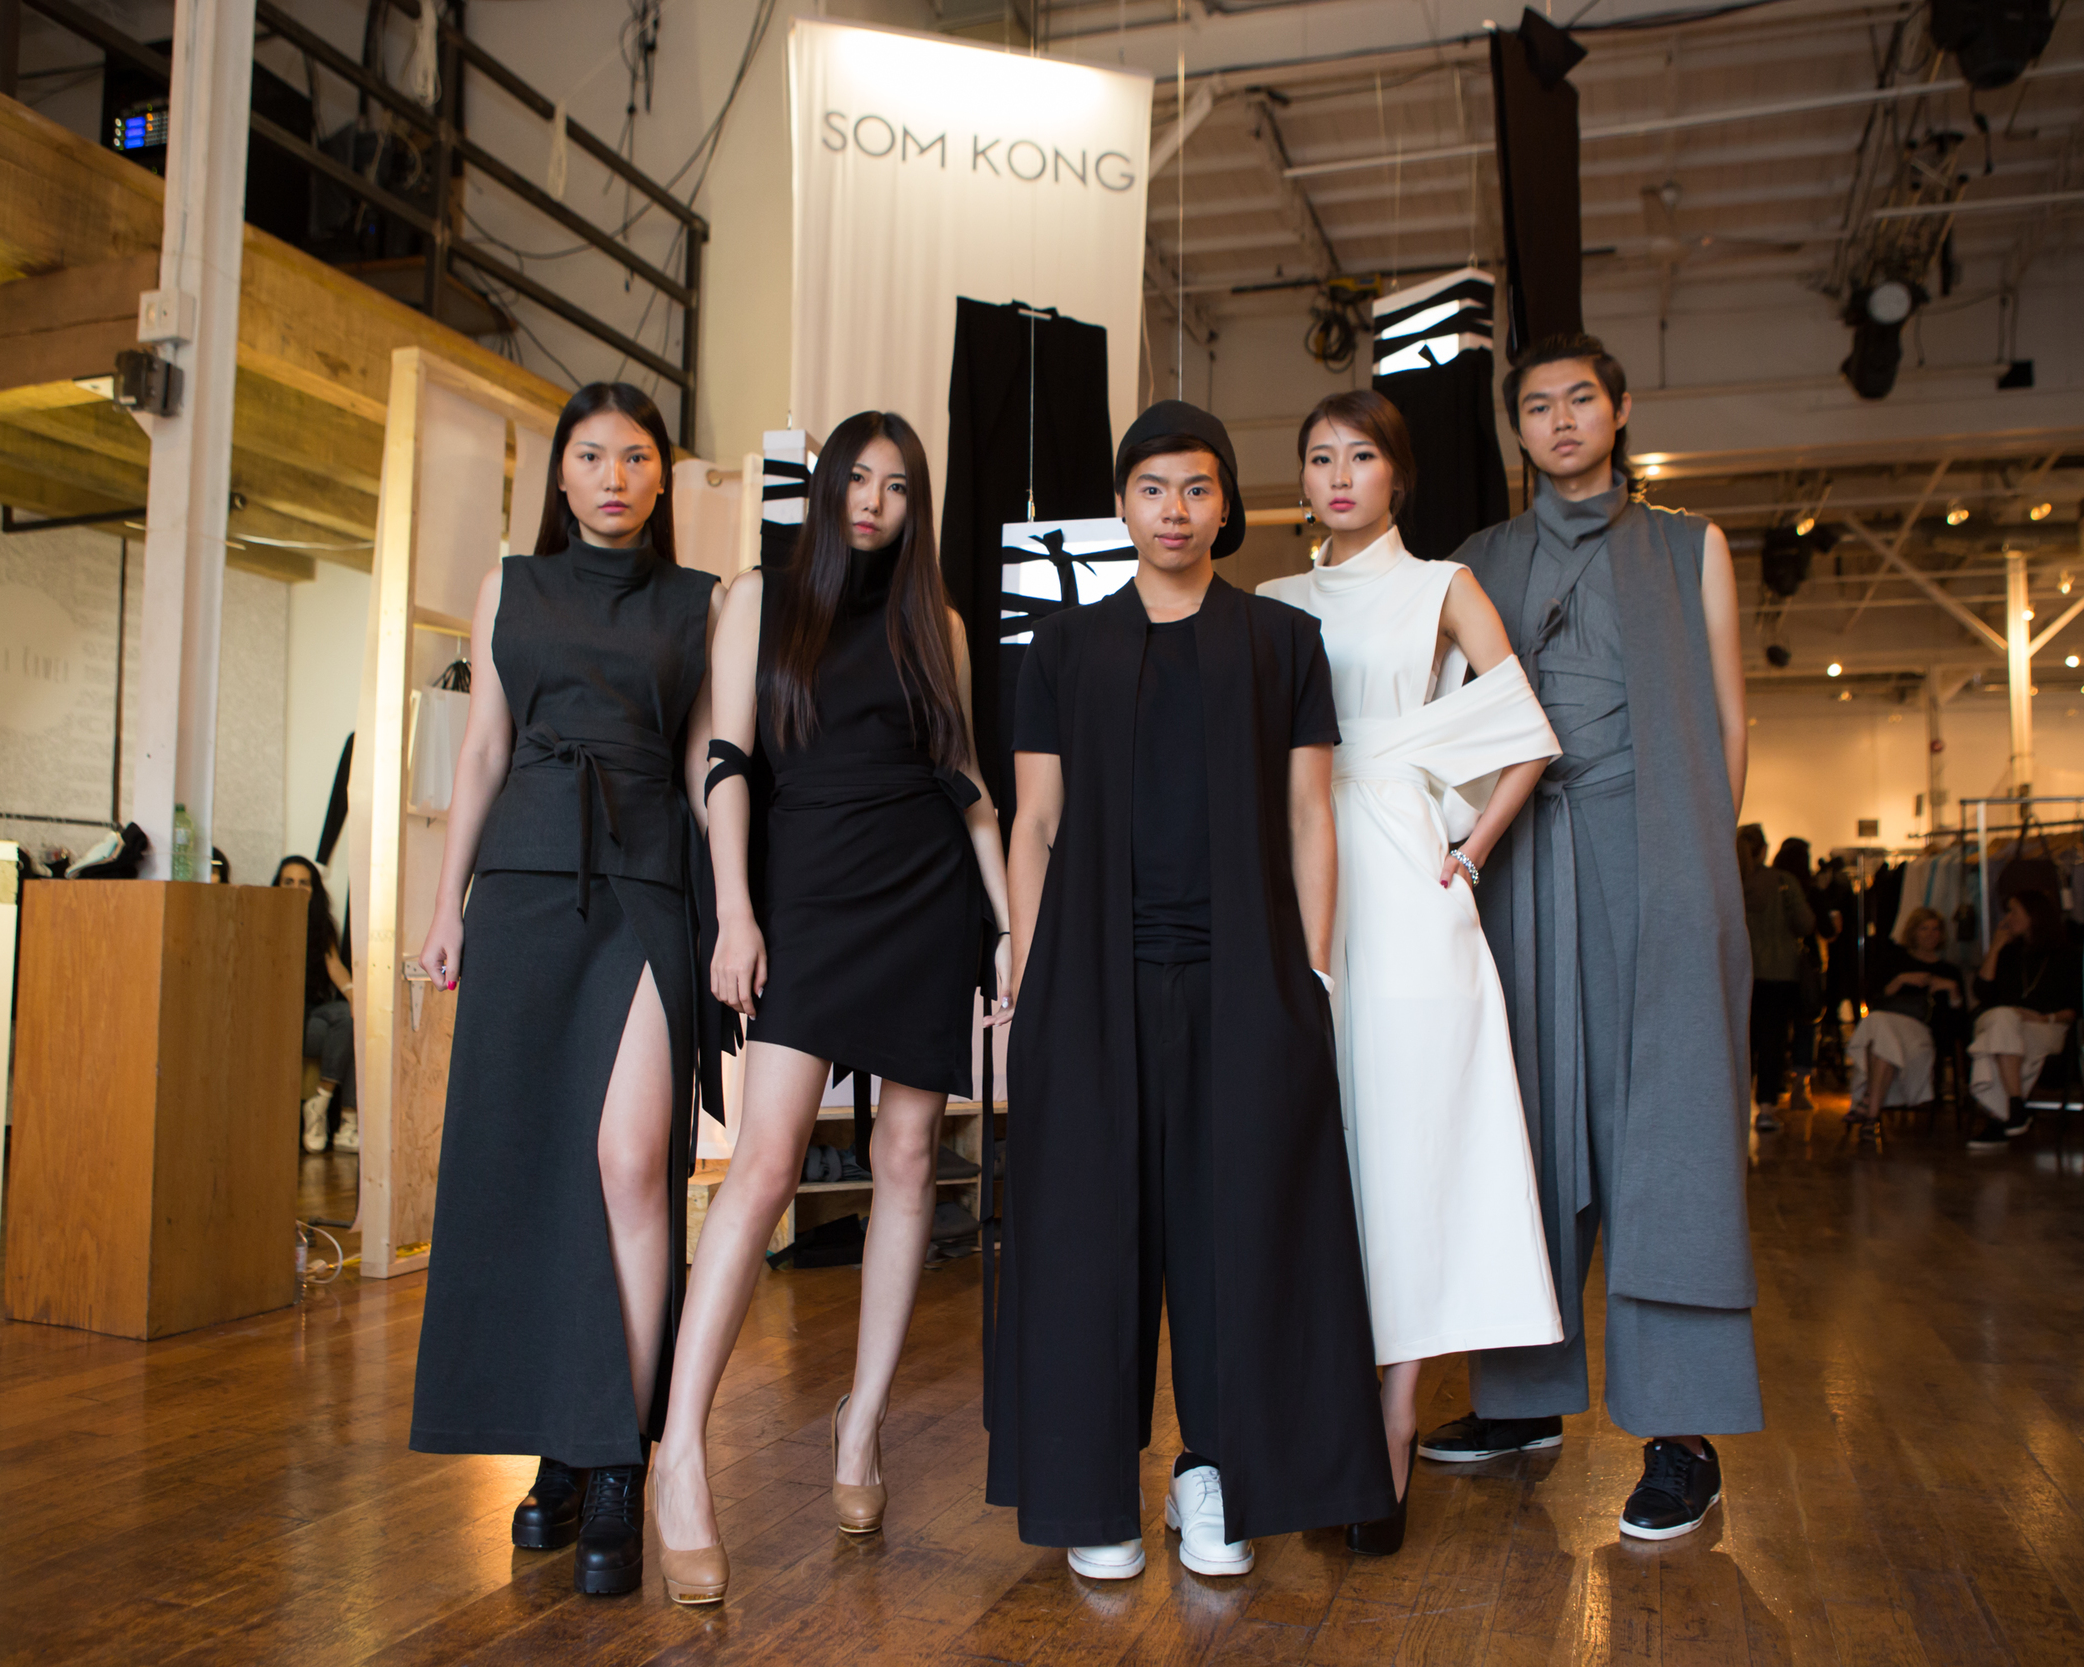 Som Kong and his team of models at #INLANDFall2015